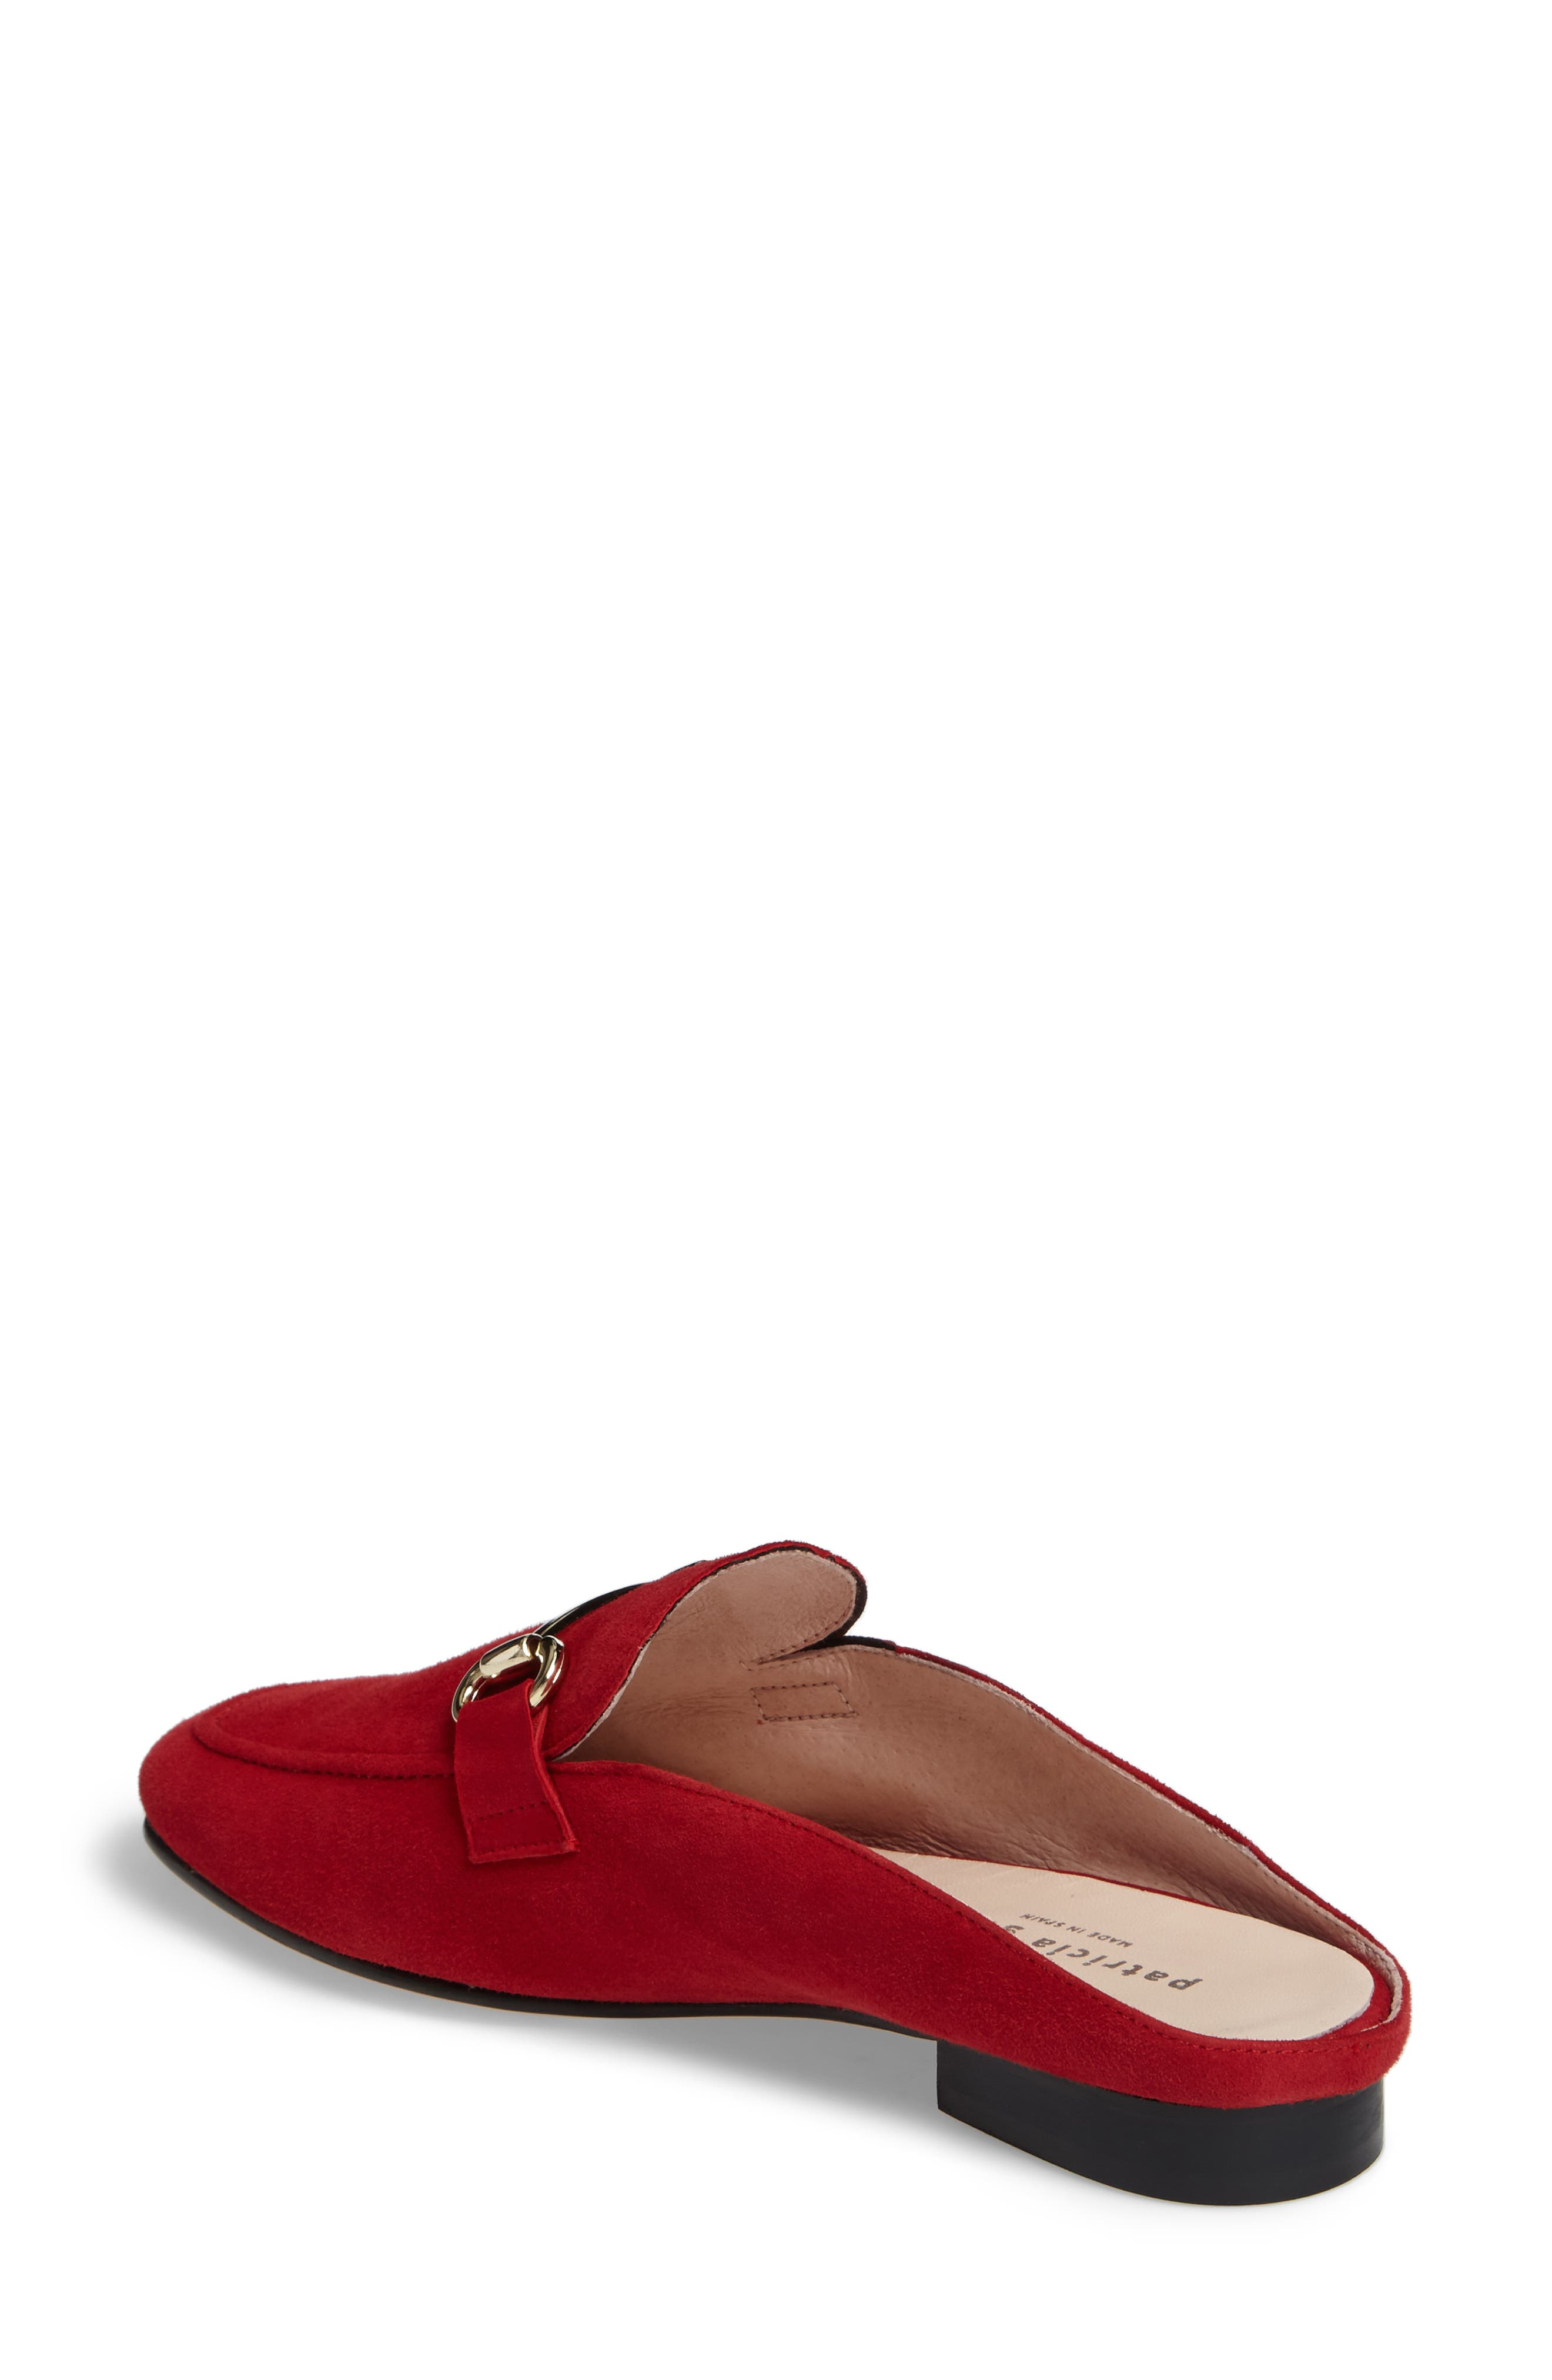 Sorrento Loafer Mule,                             Alternate thumbnail 2, color,                             RED SUEDE